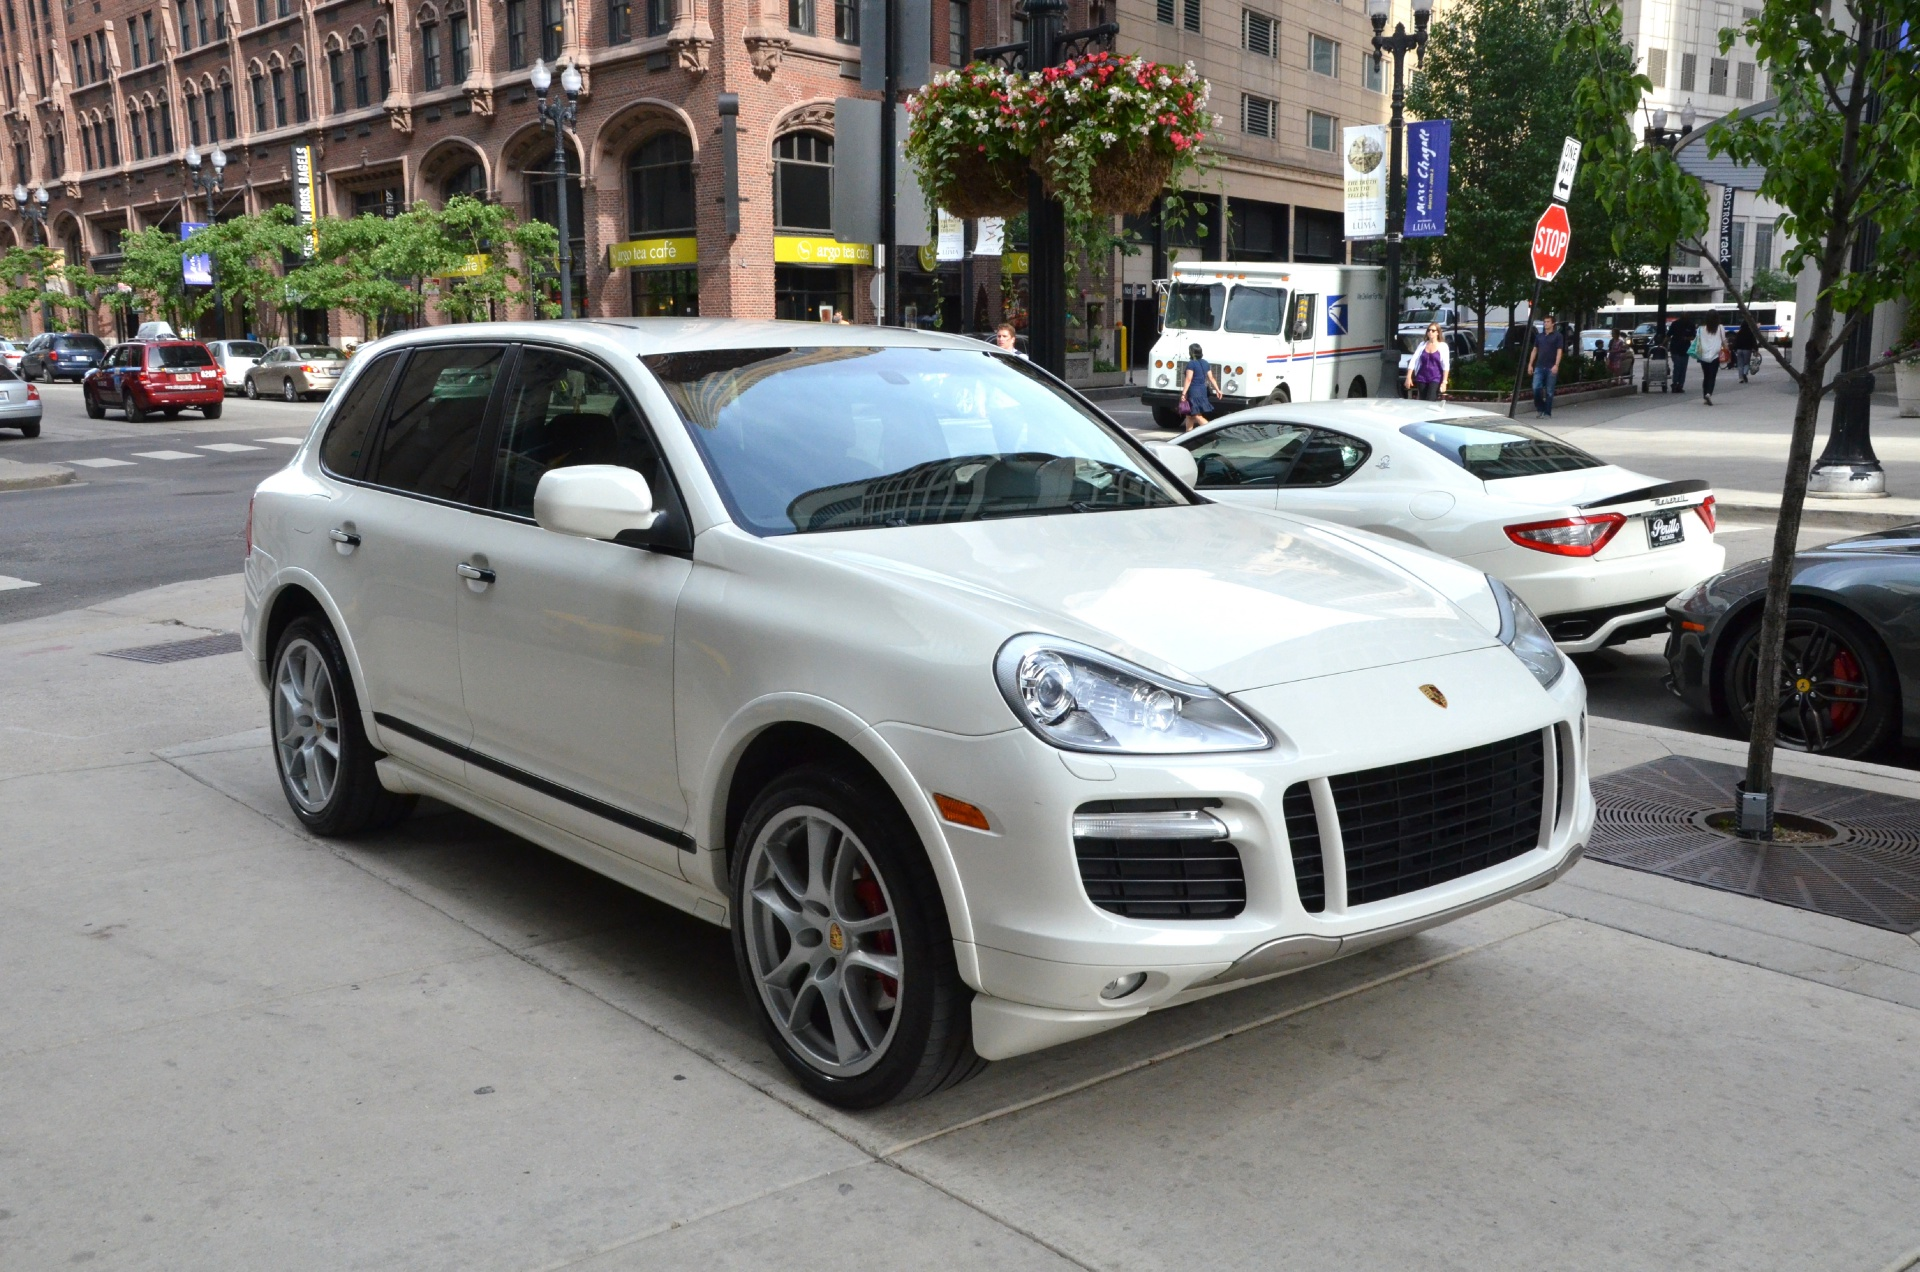 2008 porsche cayenne gts stock gc888aaa for sale near chicago il il porsche dealer. Black Bedroom Furniture Sets. Home Design Ideas